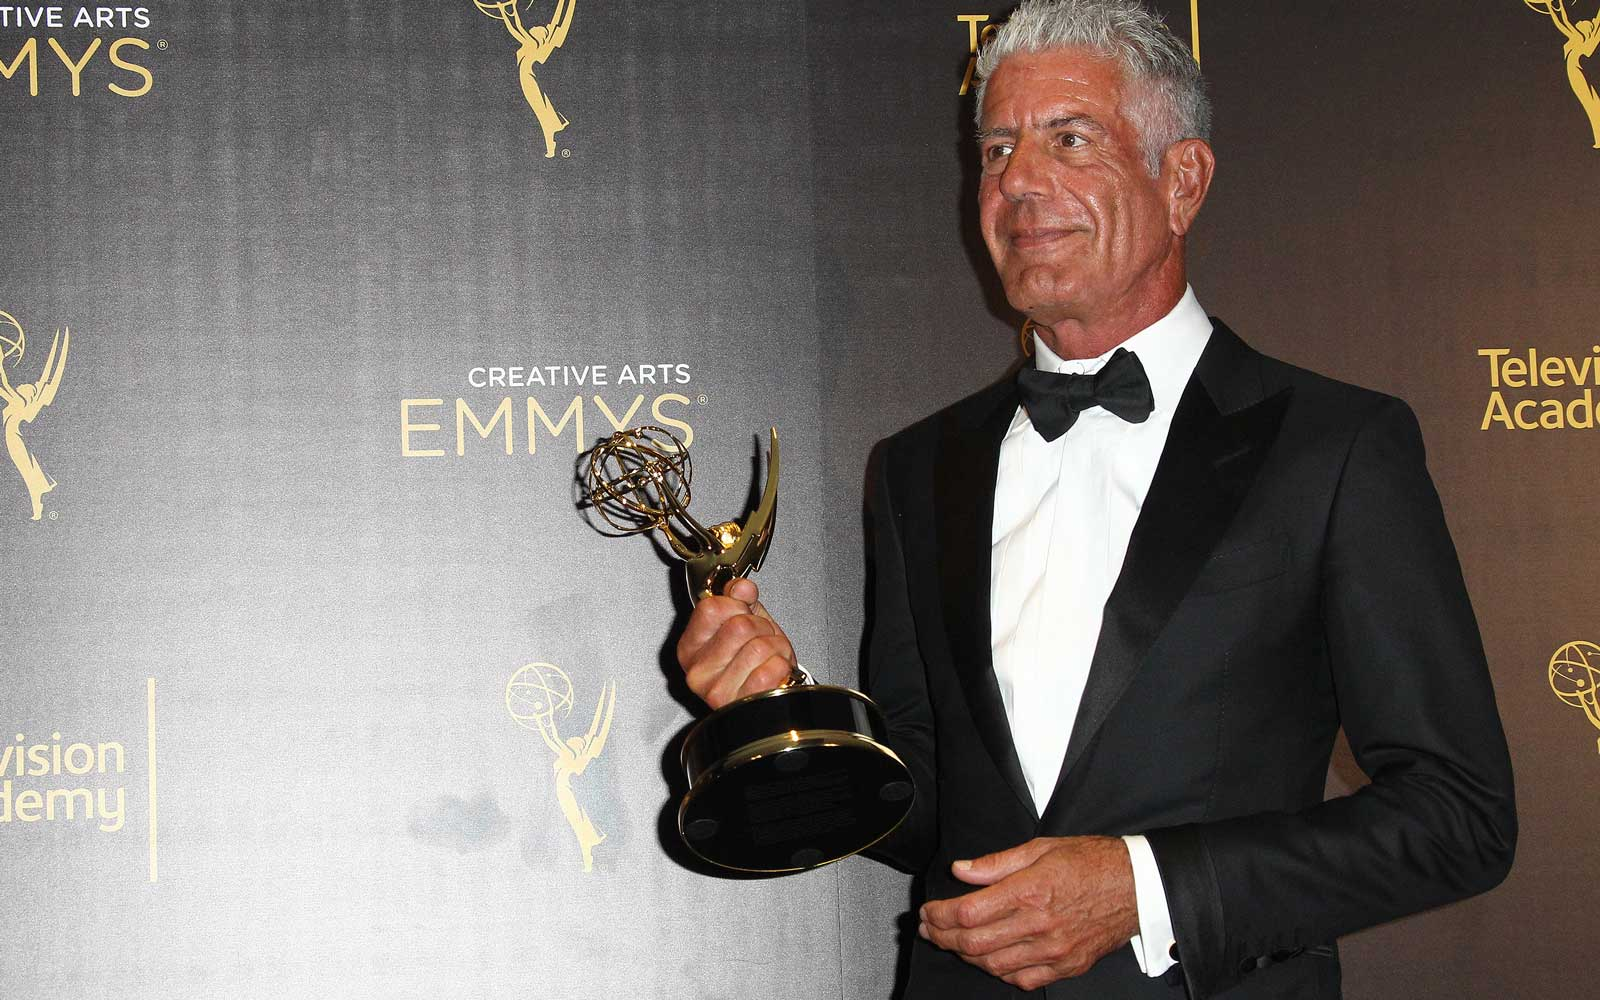 Anthony Bourdain at the Creative Arts Emmy Awards in 2016